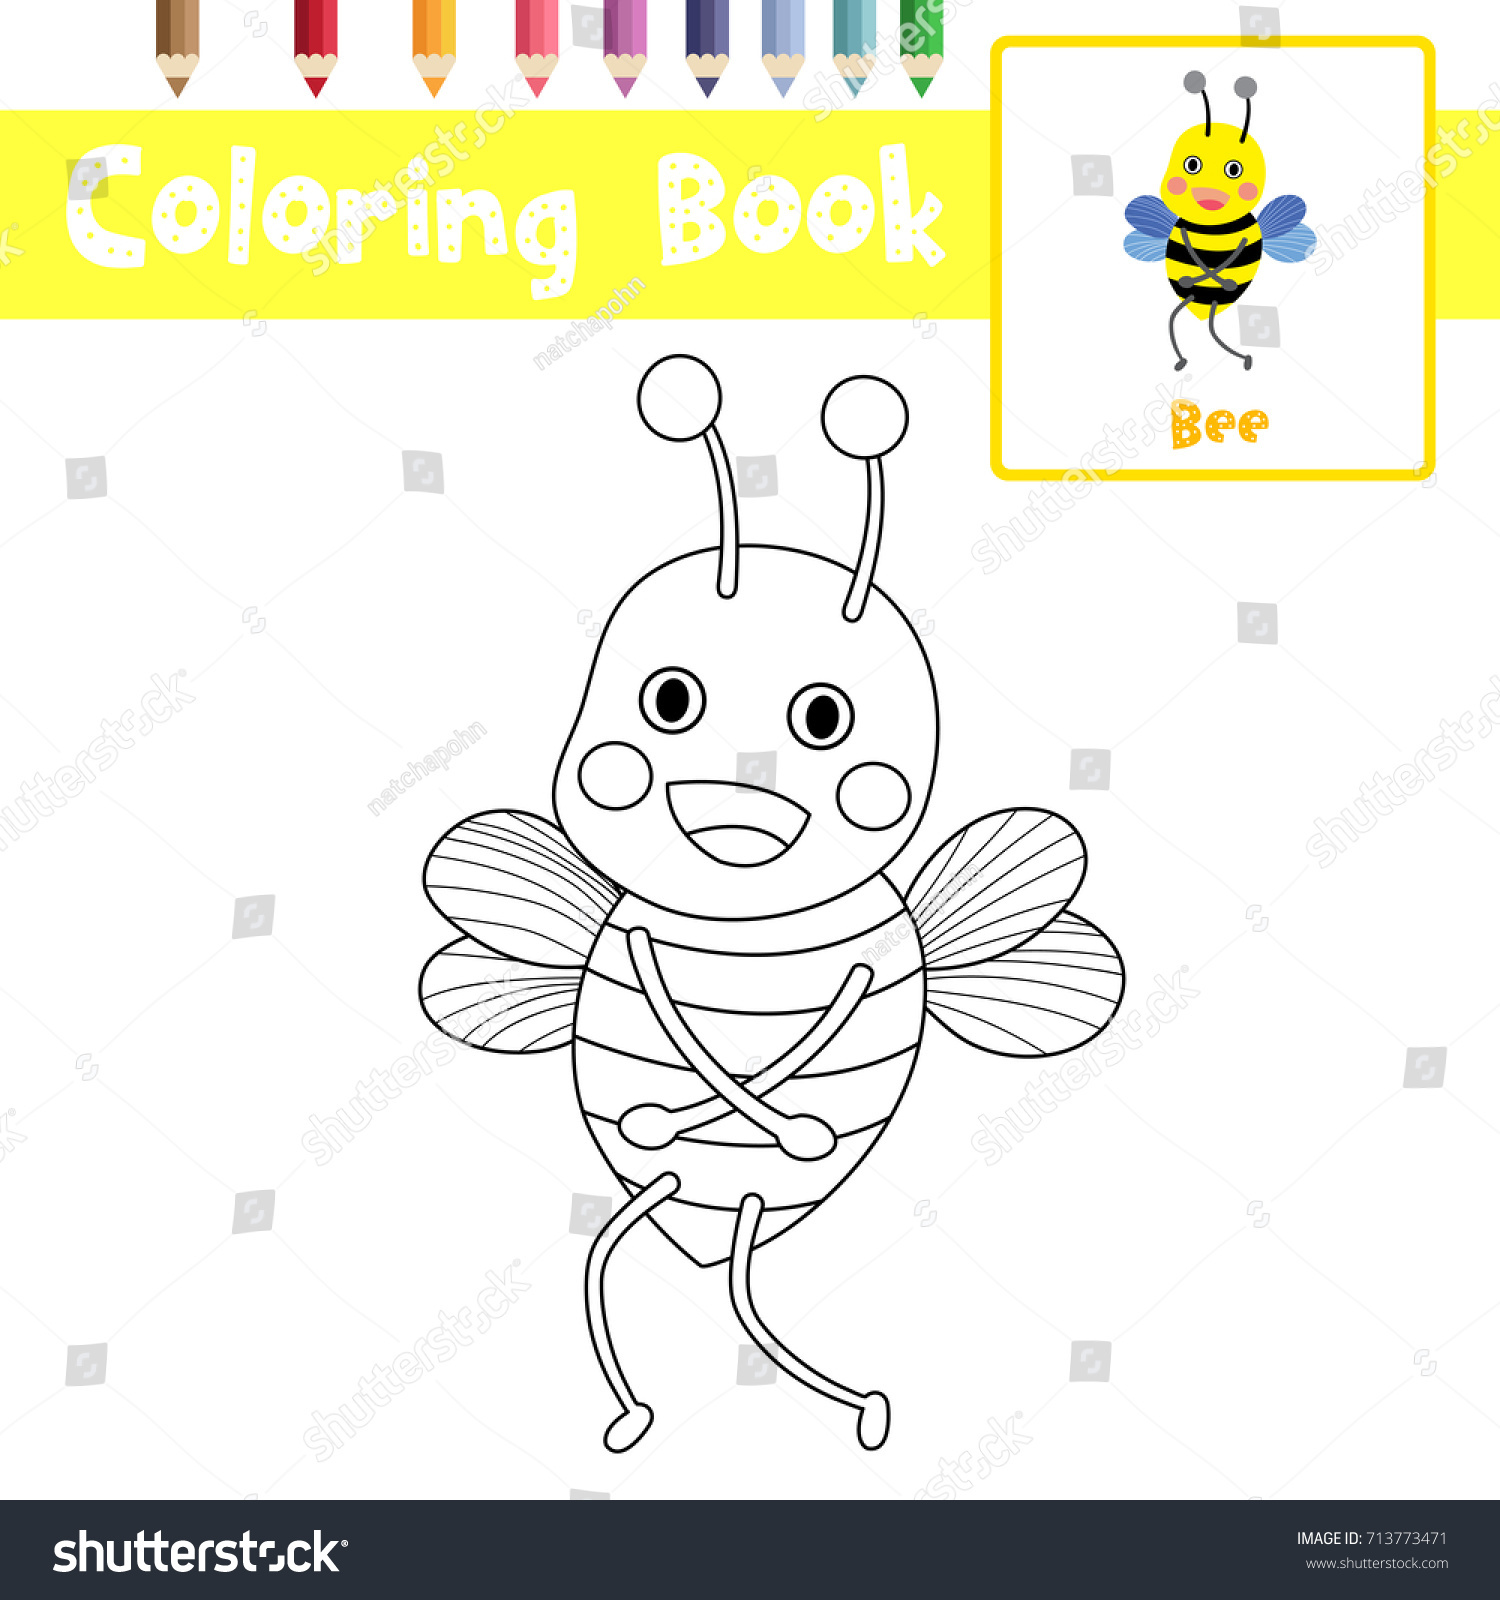 Coloring Page Of Standing Bee Animals For Preschool Kids Activity  Educational Worksheet. Vector Illustration.